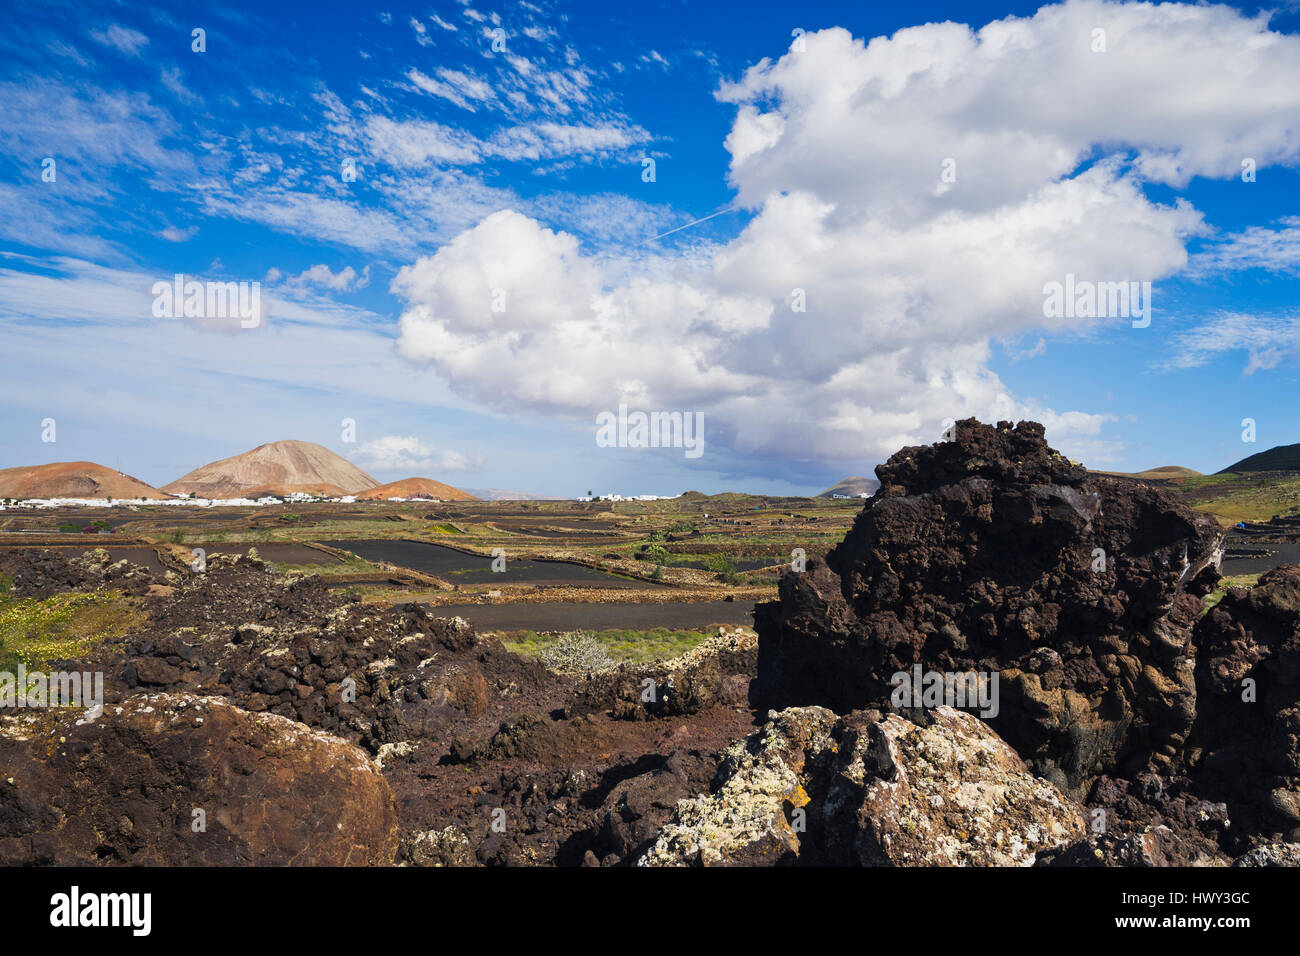 archaic vulcan landscape of Lanzarote - Stock Image